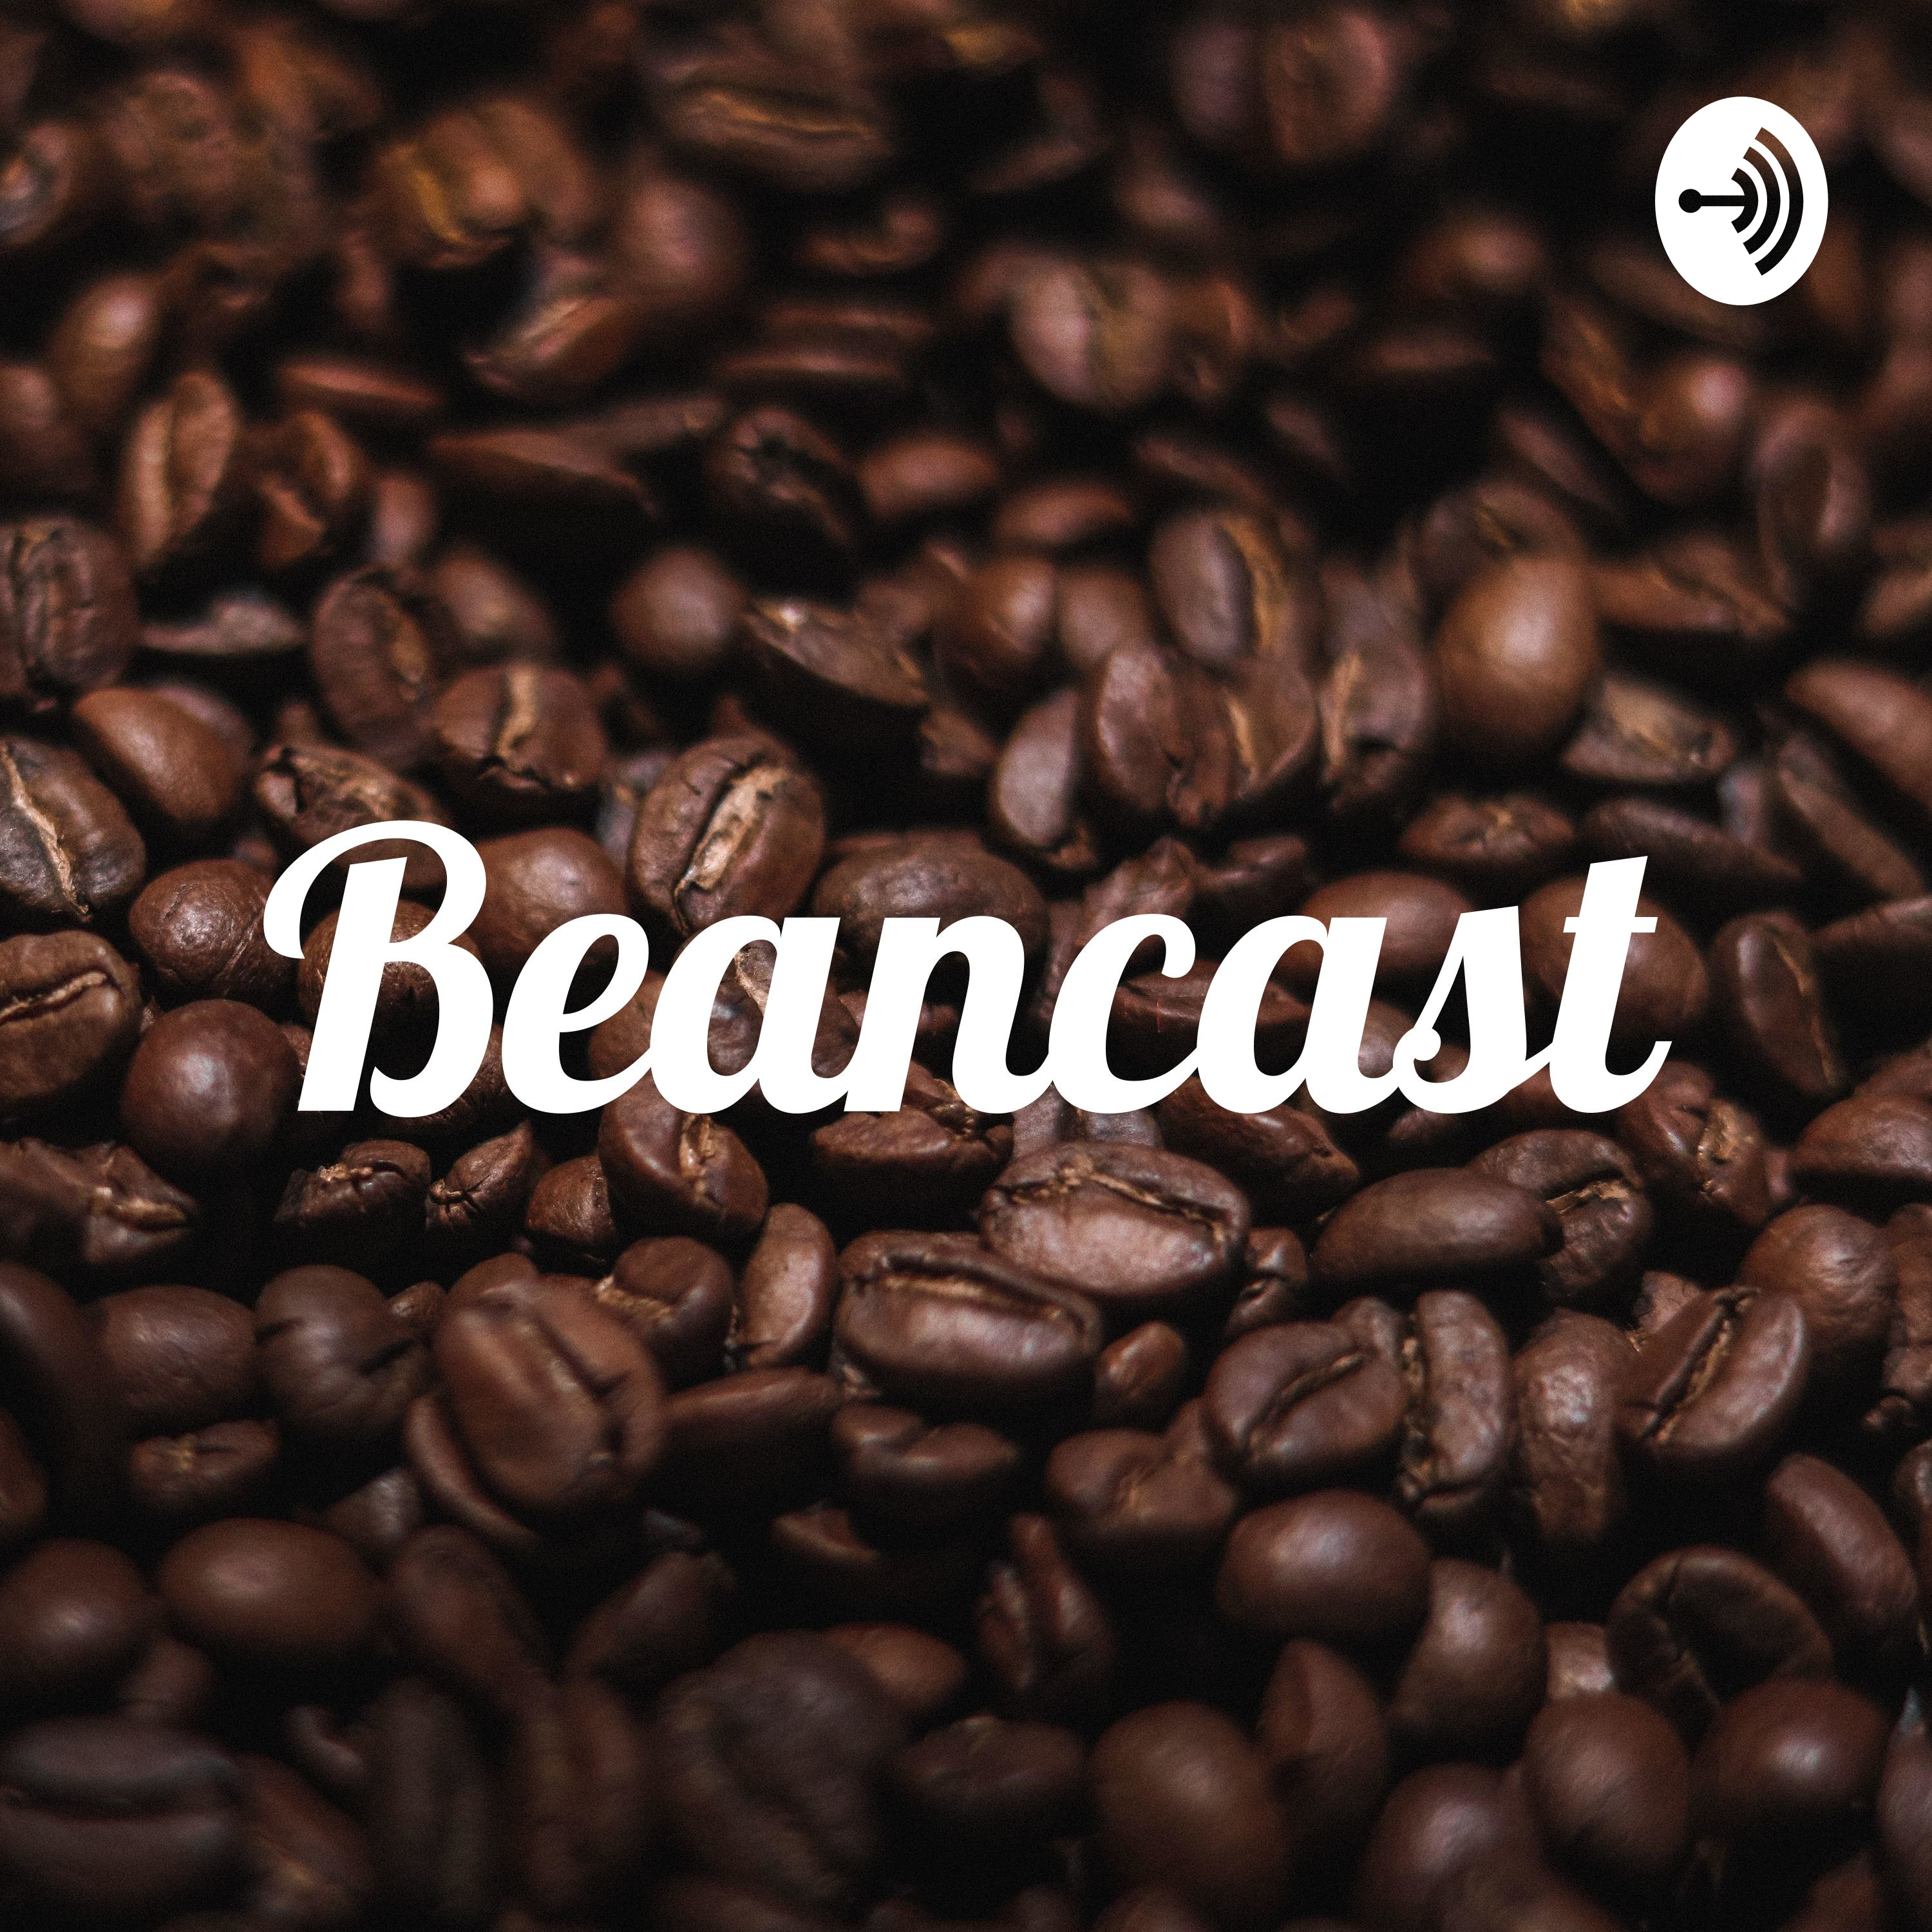 Beancast 1 - how does this work